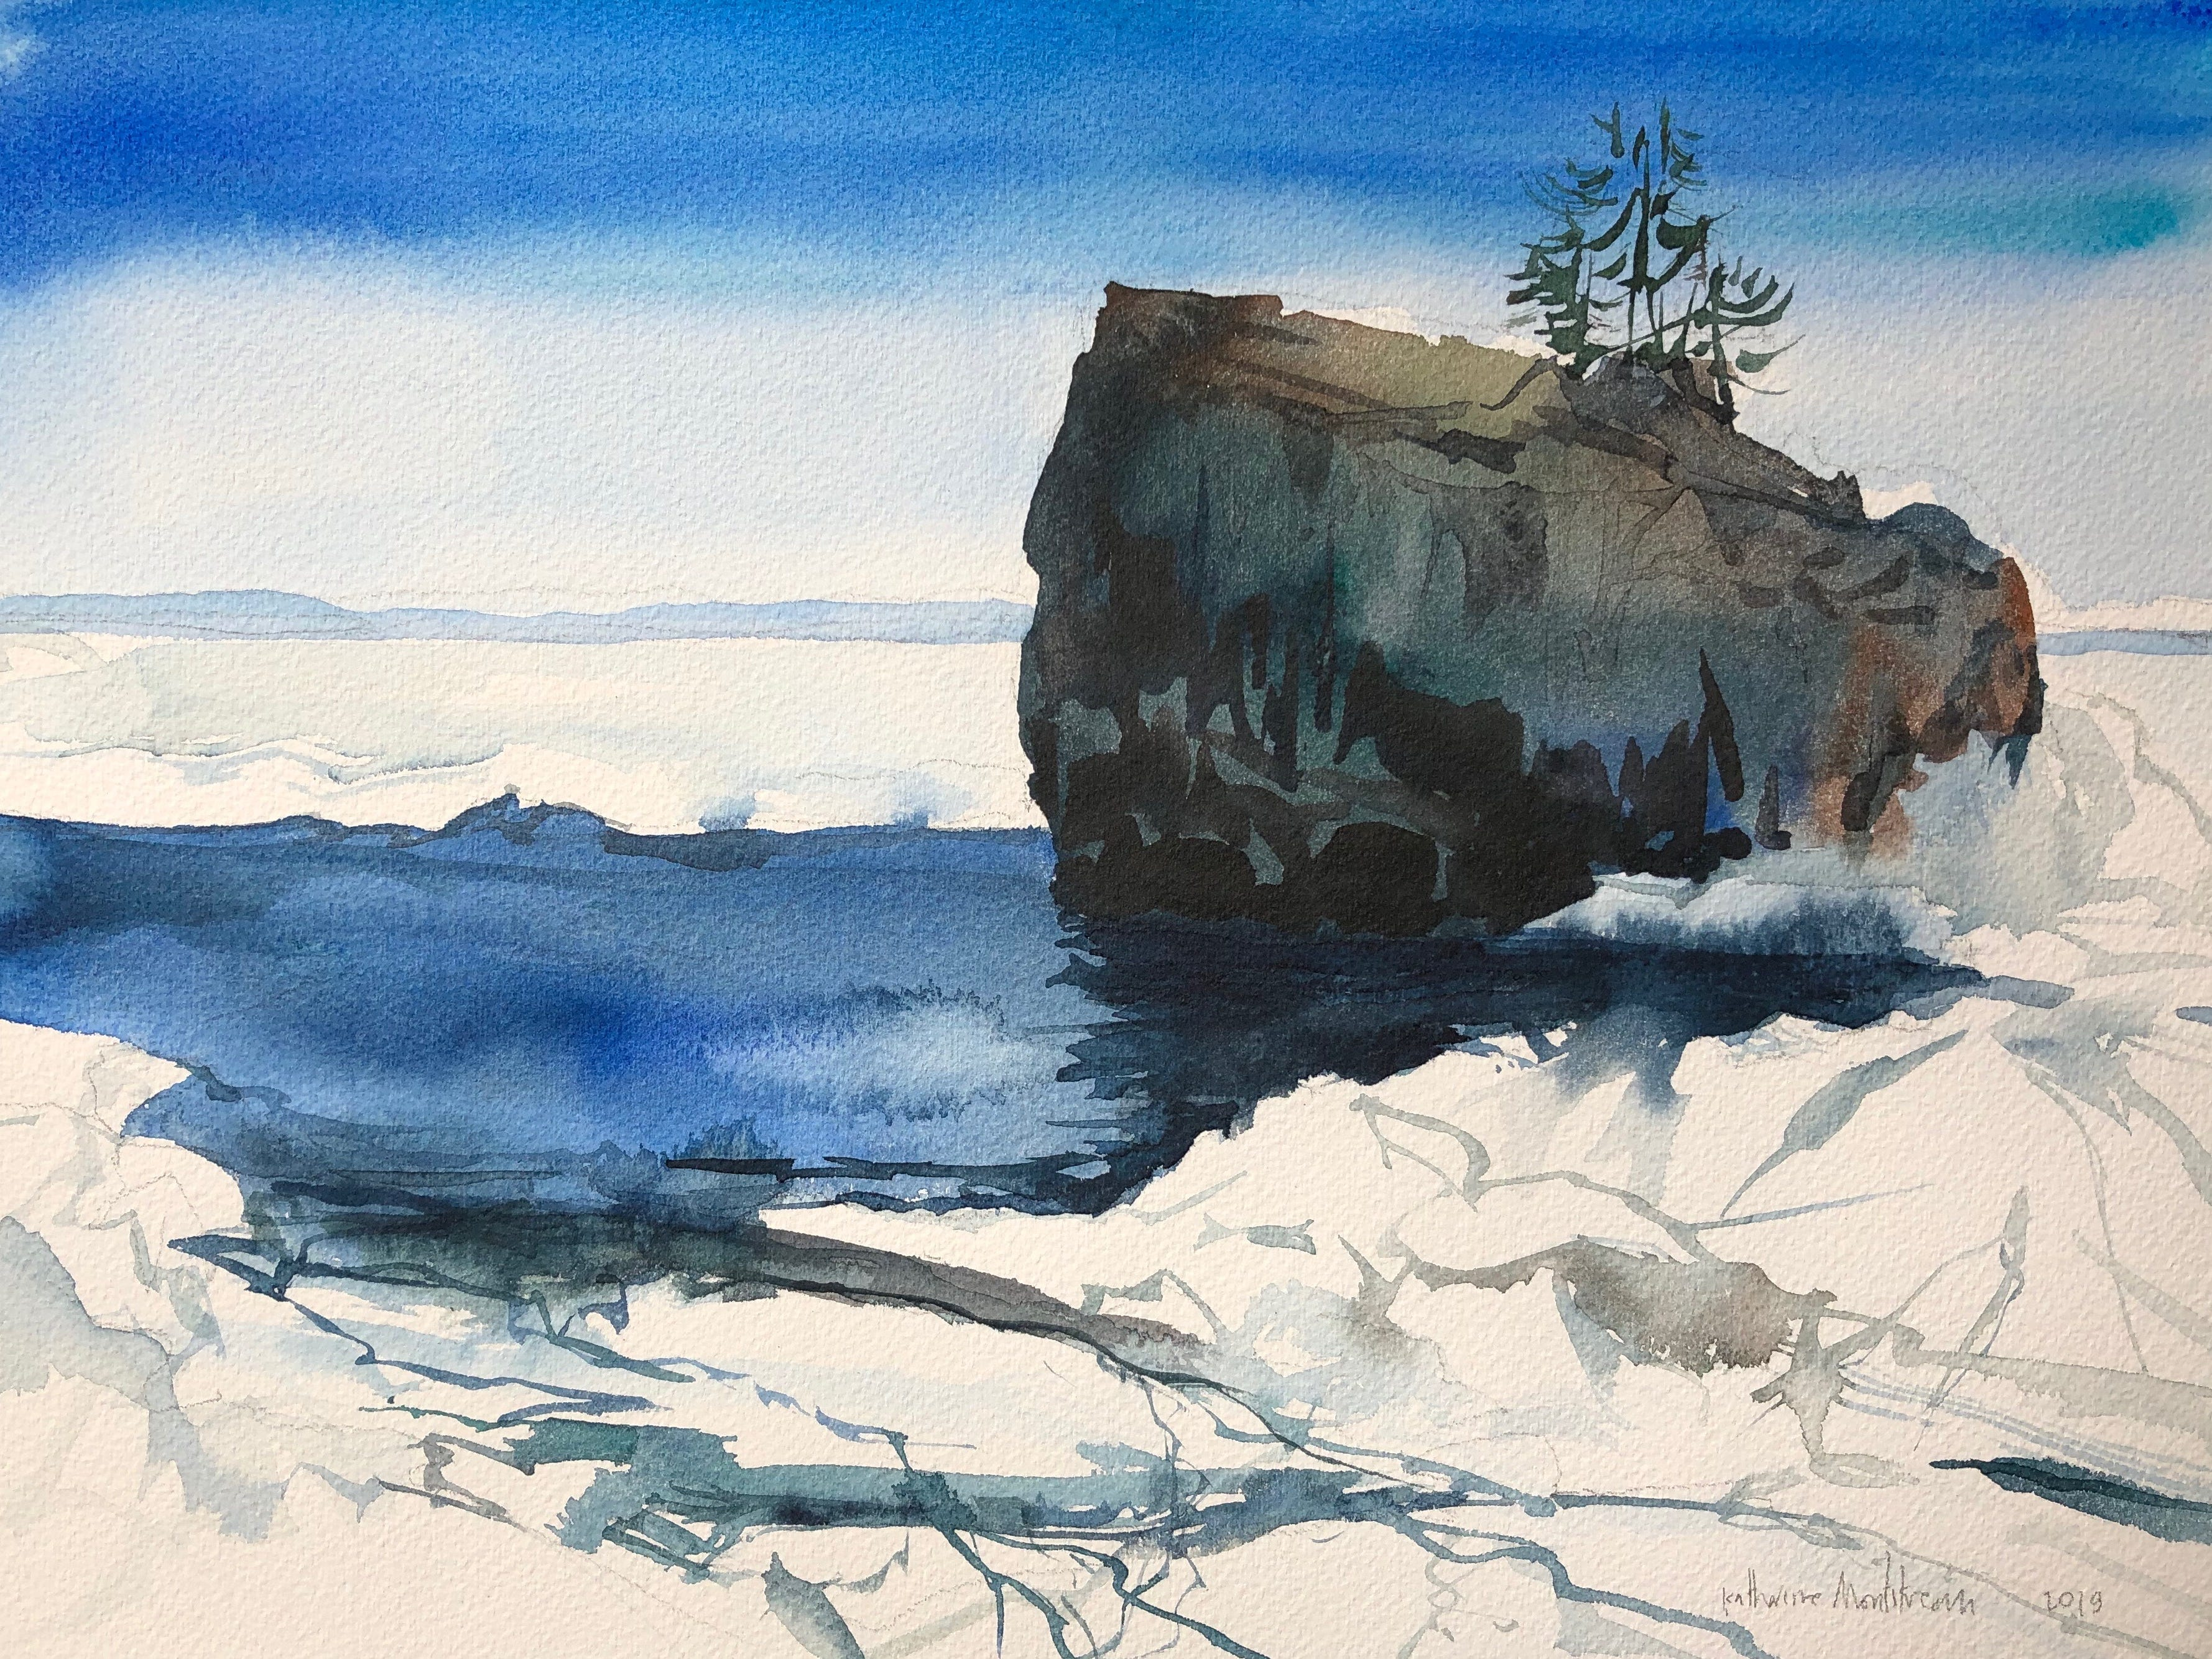 A watercolor painting by Burlington artist Katharine Montstream depicts a spot on Lake Champlain off Rock Point in late March 2019.